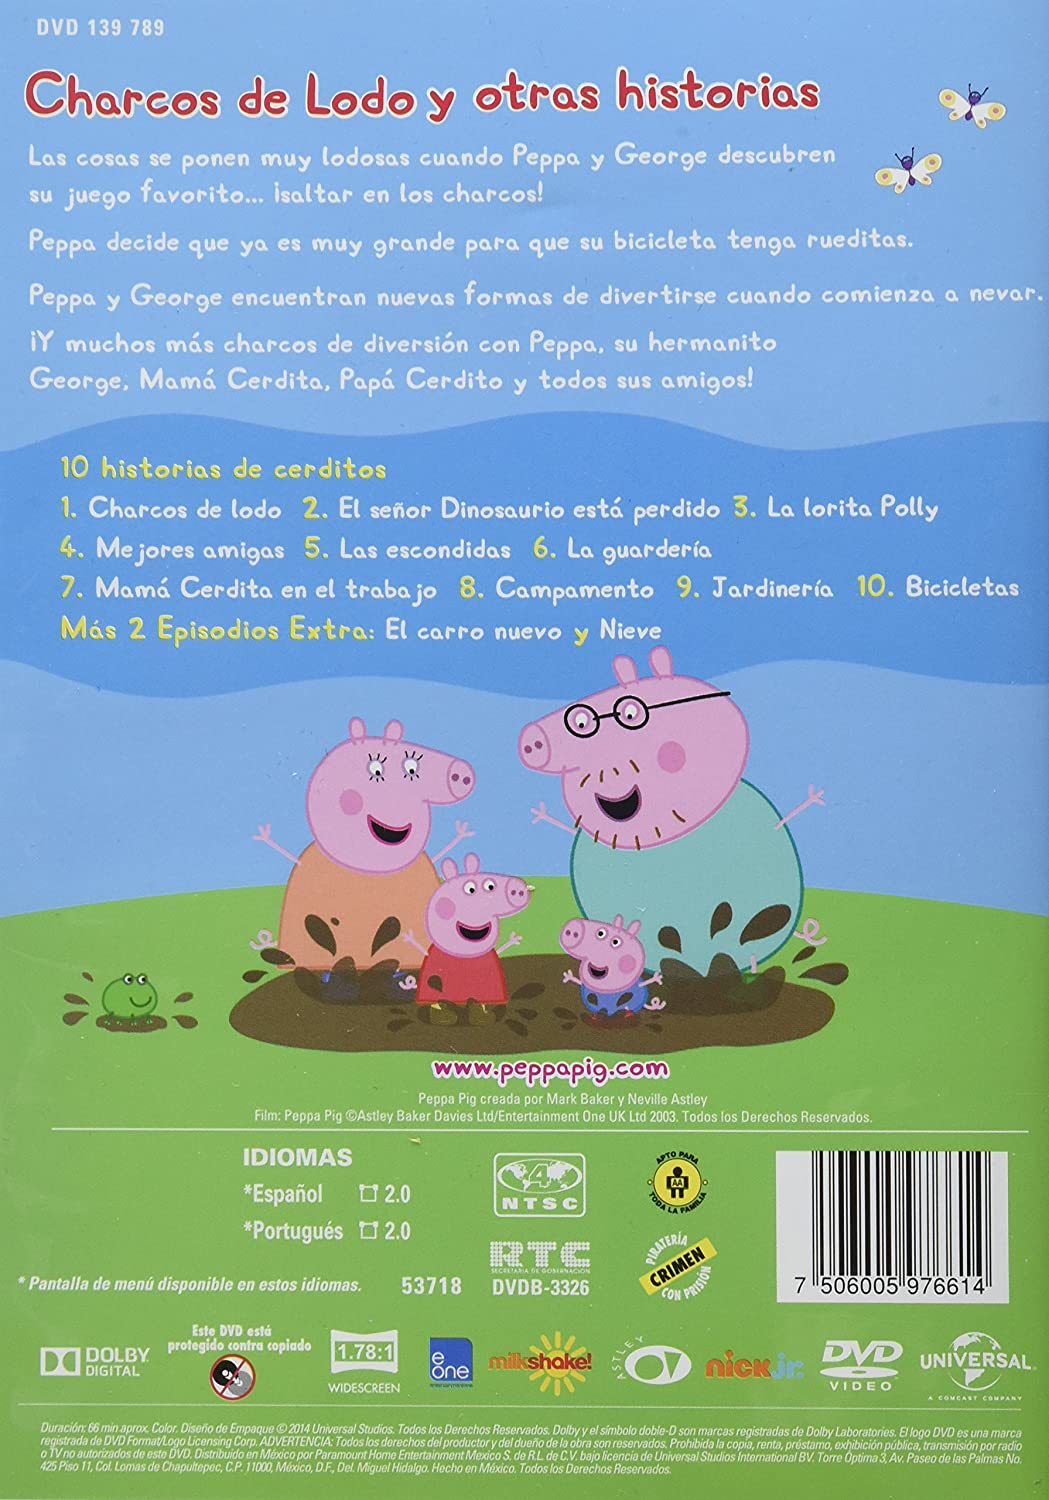 Amazon.com: Peppa Pig En Espanol Temporada 1 Volumen 1: Charcos De Lodo Region 4 DVD (Spanish and Portuguese Options): Movies & TV